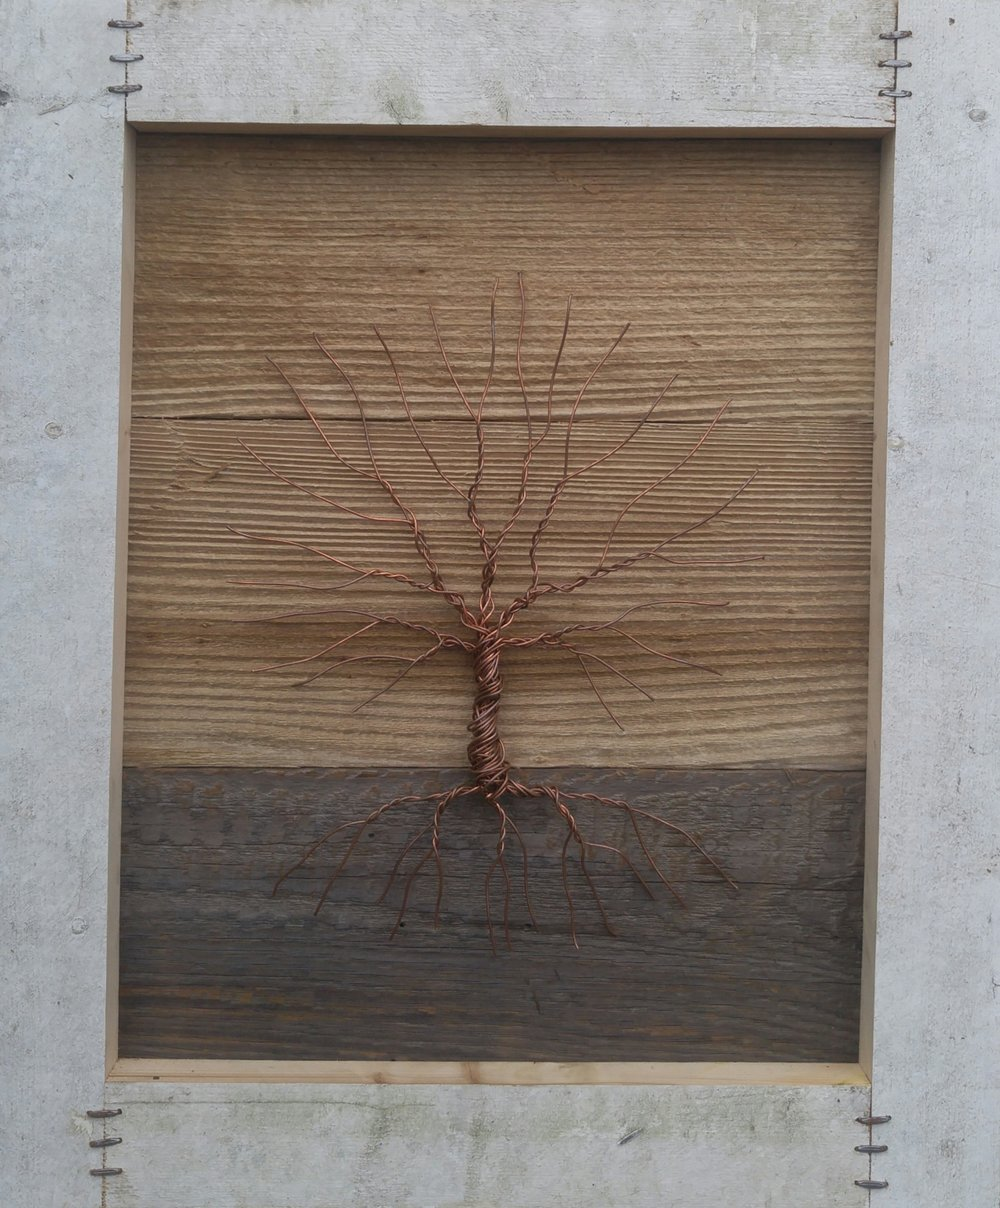 Tree 21   26 X 22 • wood, wire   $395